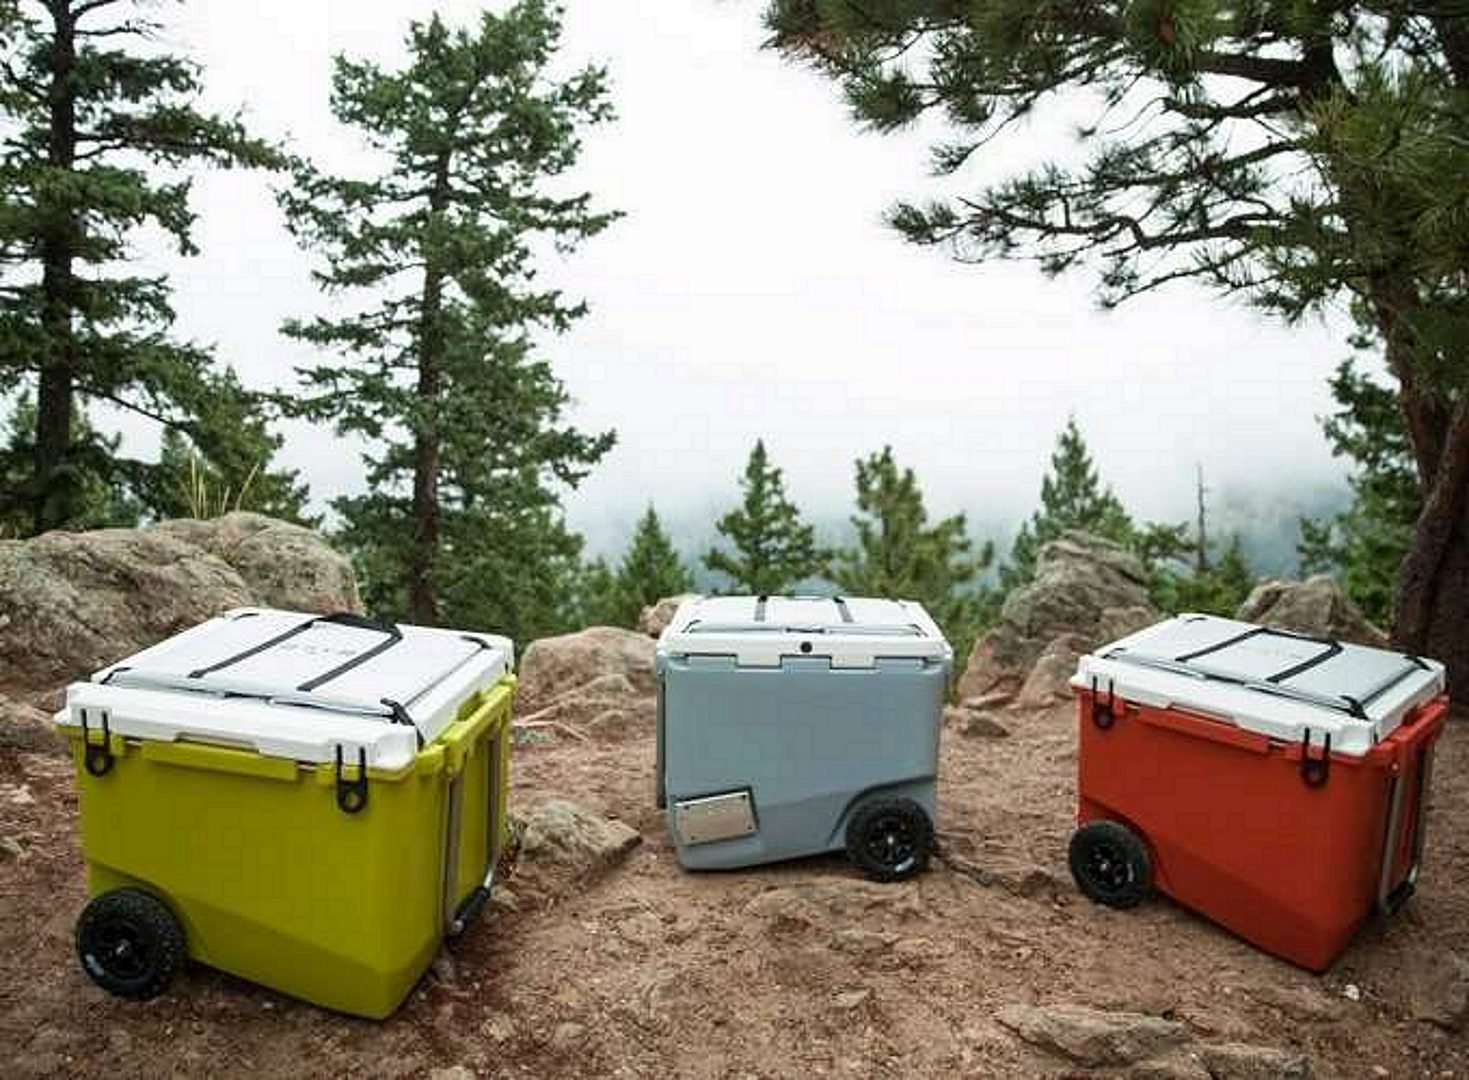 3 Coolers on a hill